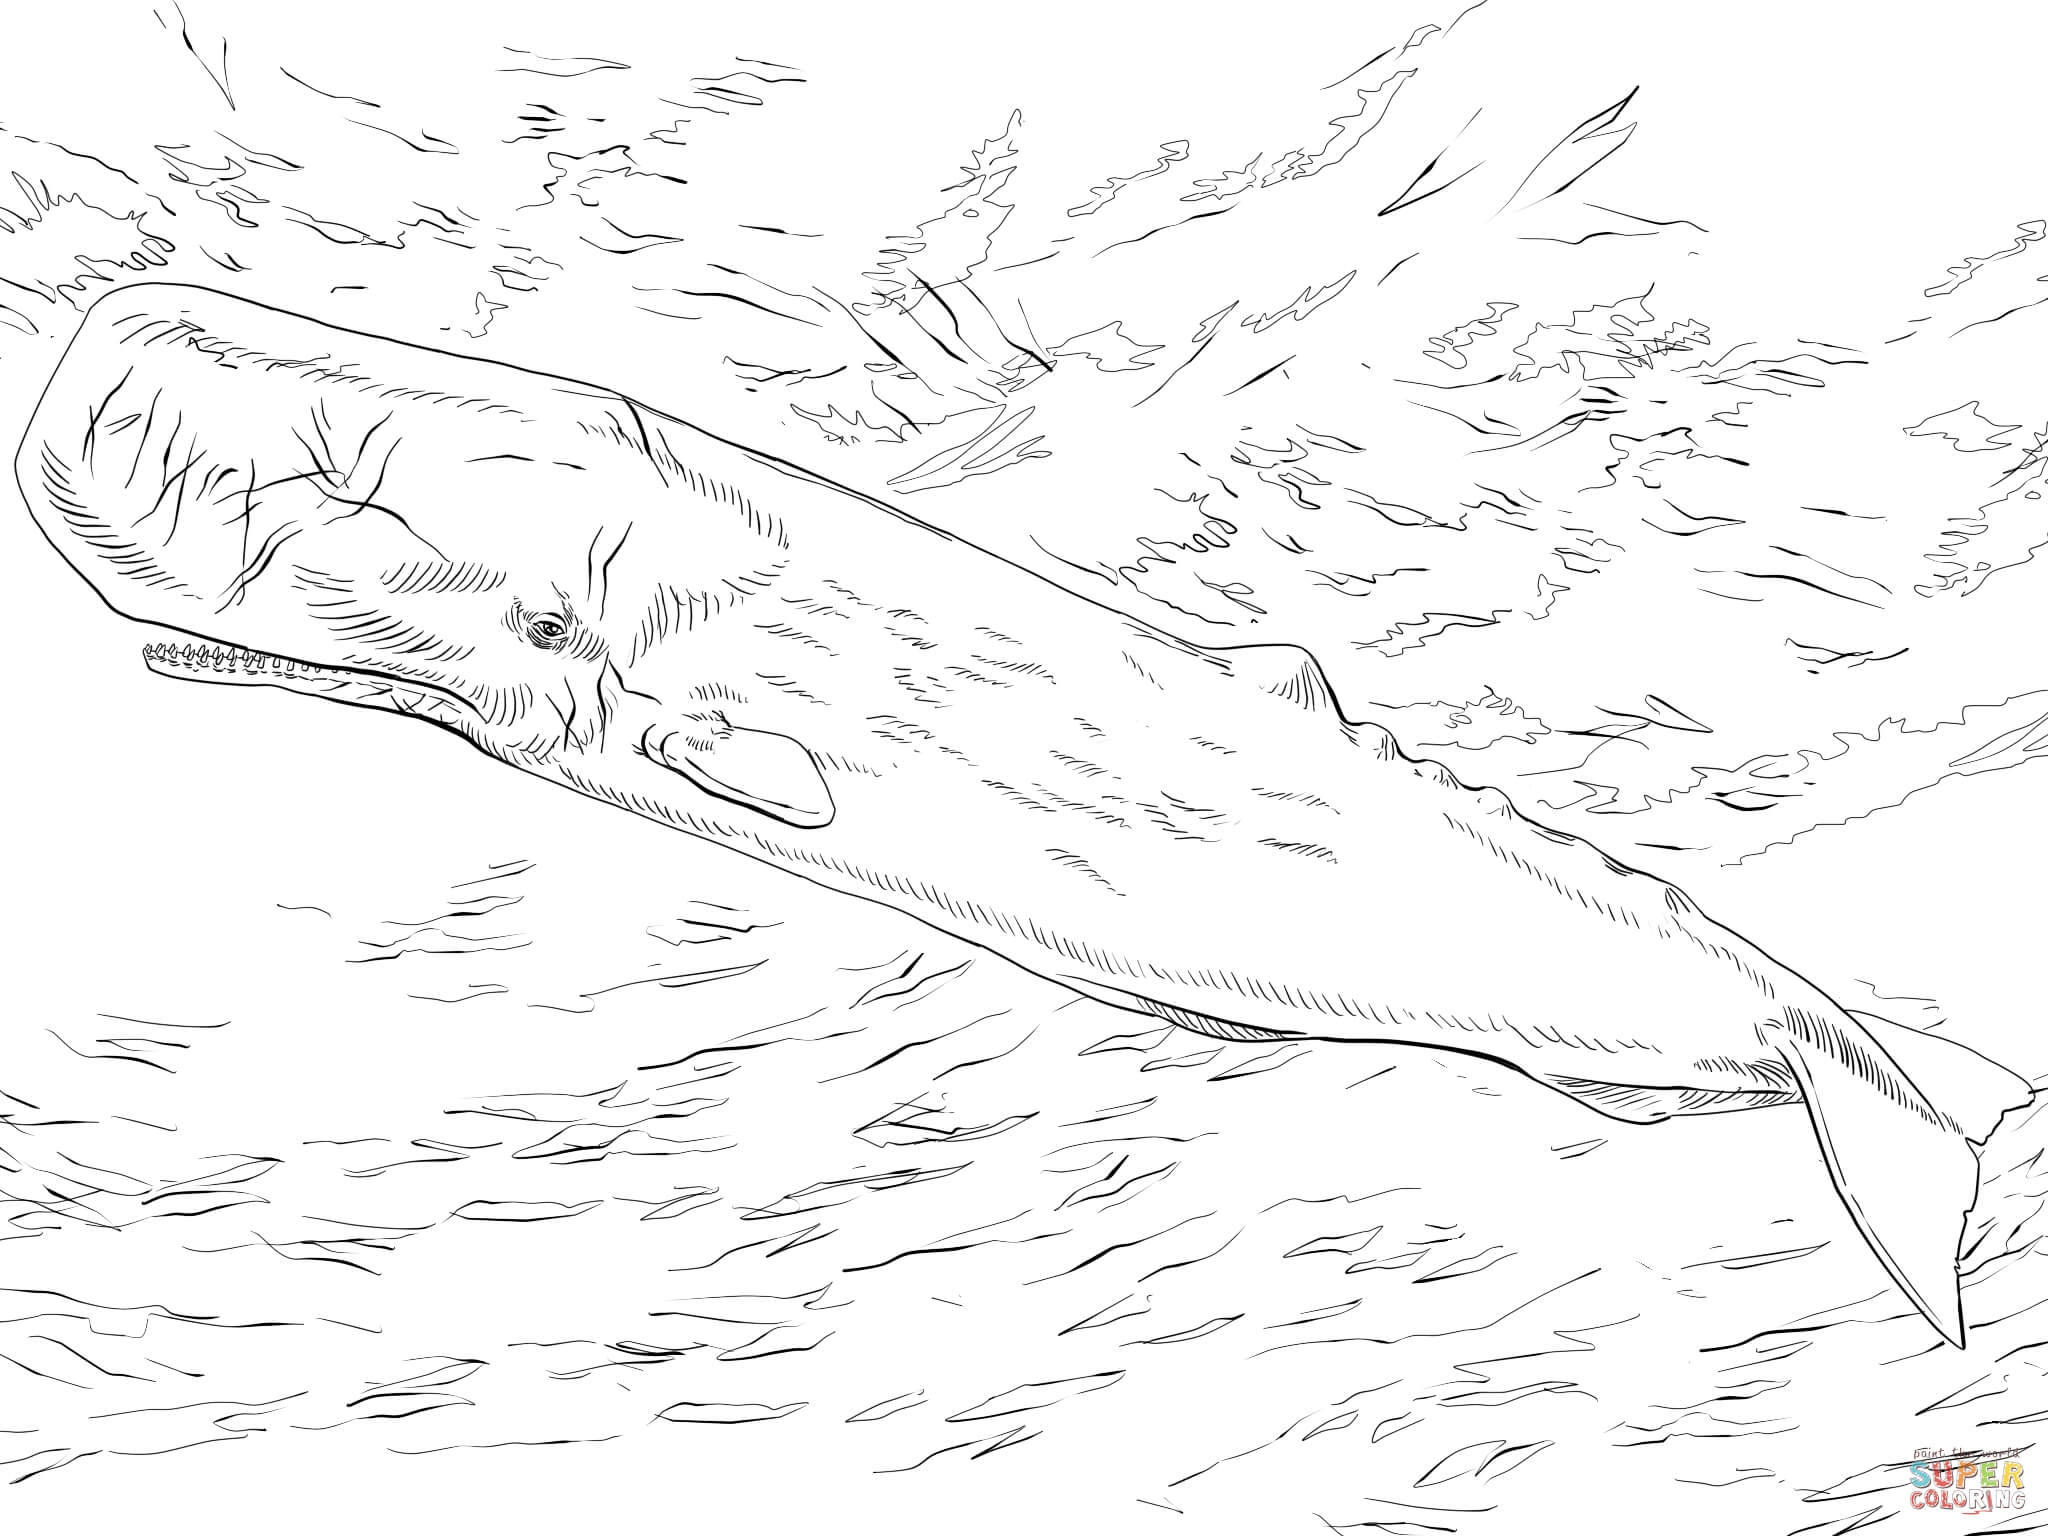 27 Whale Shark Coloring Page Printable Free Coloring Pages